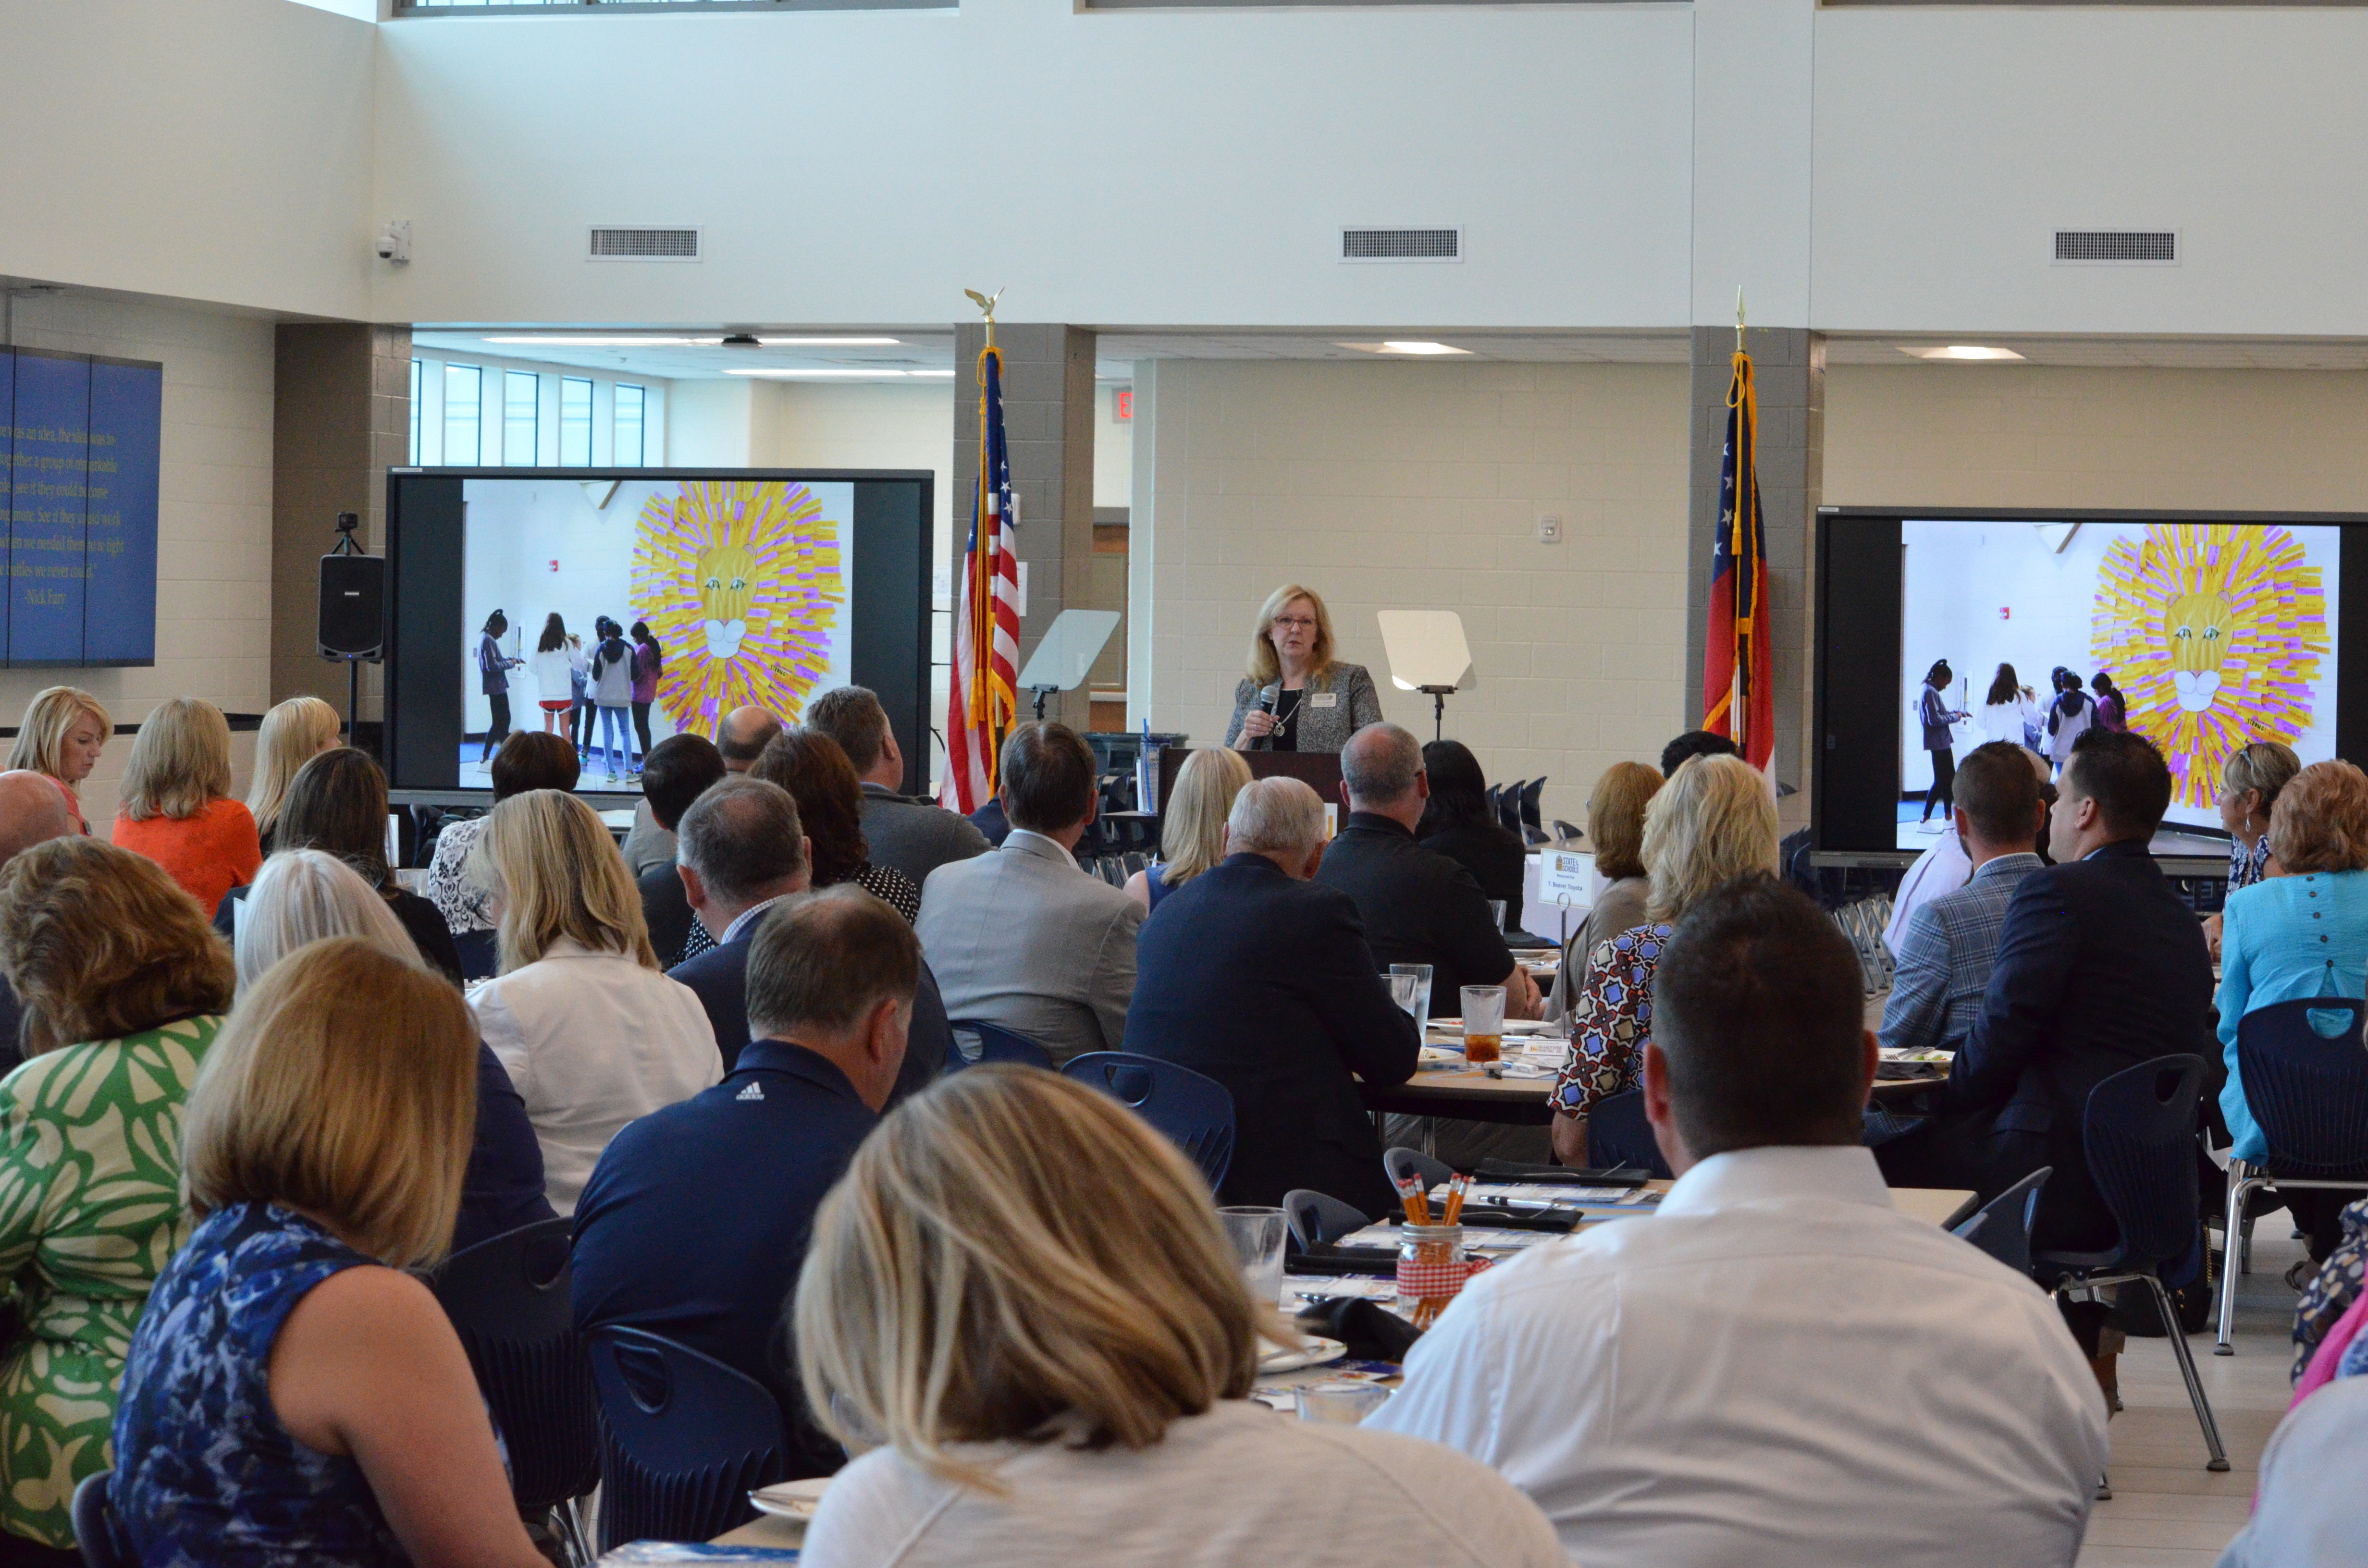 Attendees of State of the Schools listen to Kristen Morrssey present on the school year.